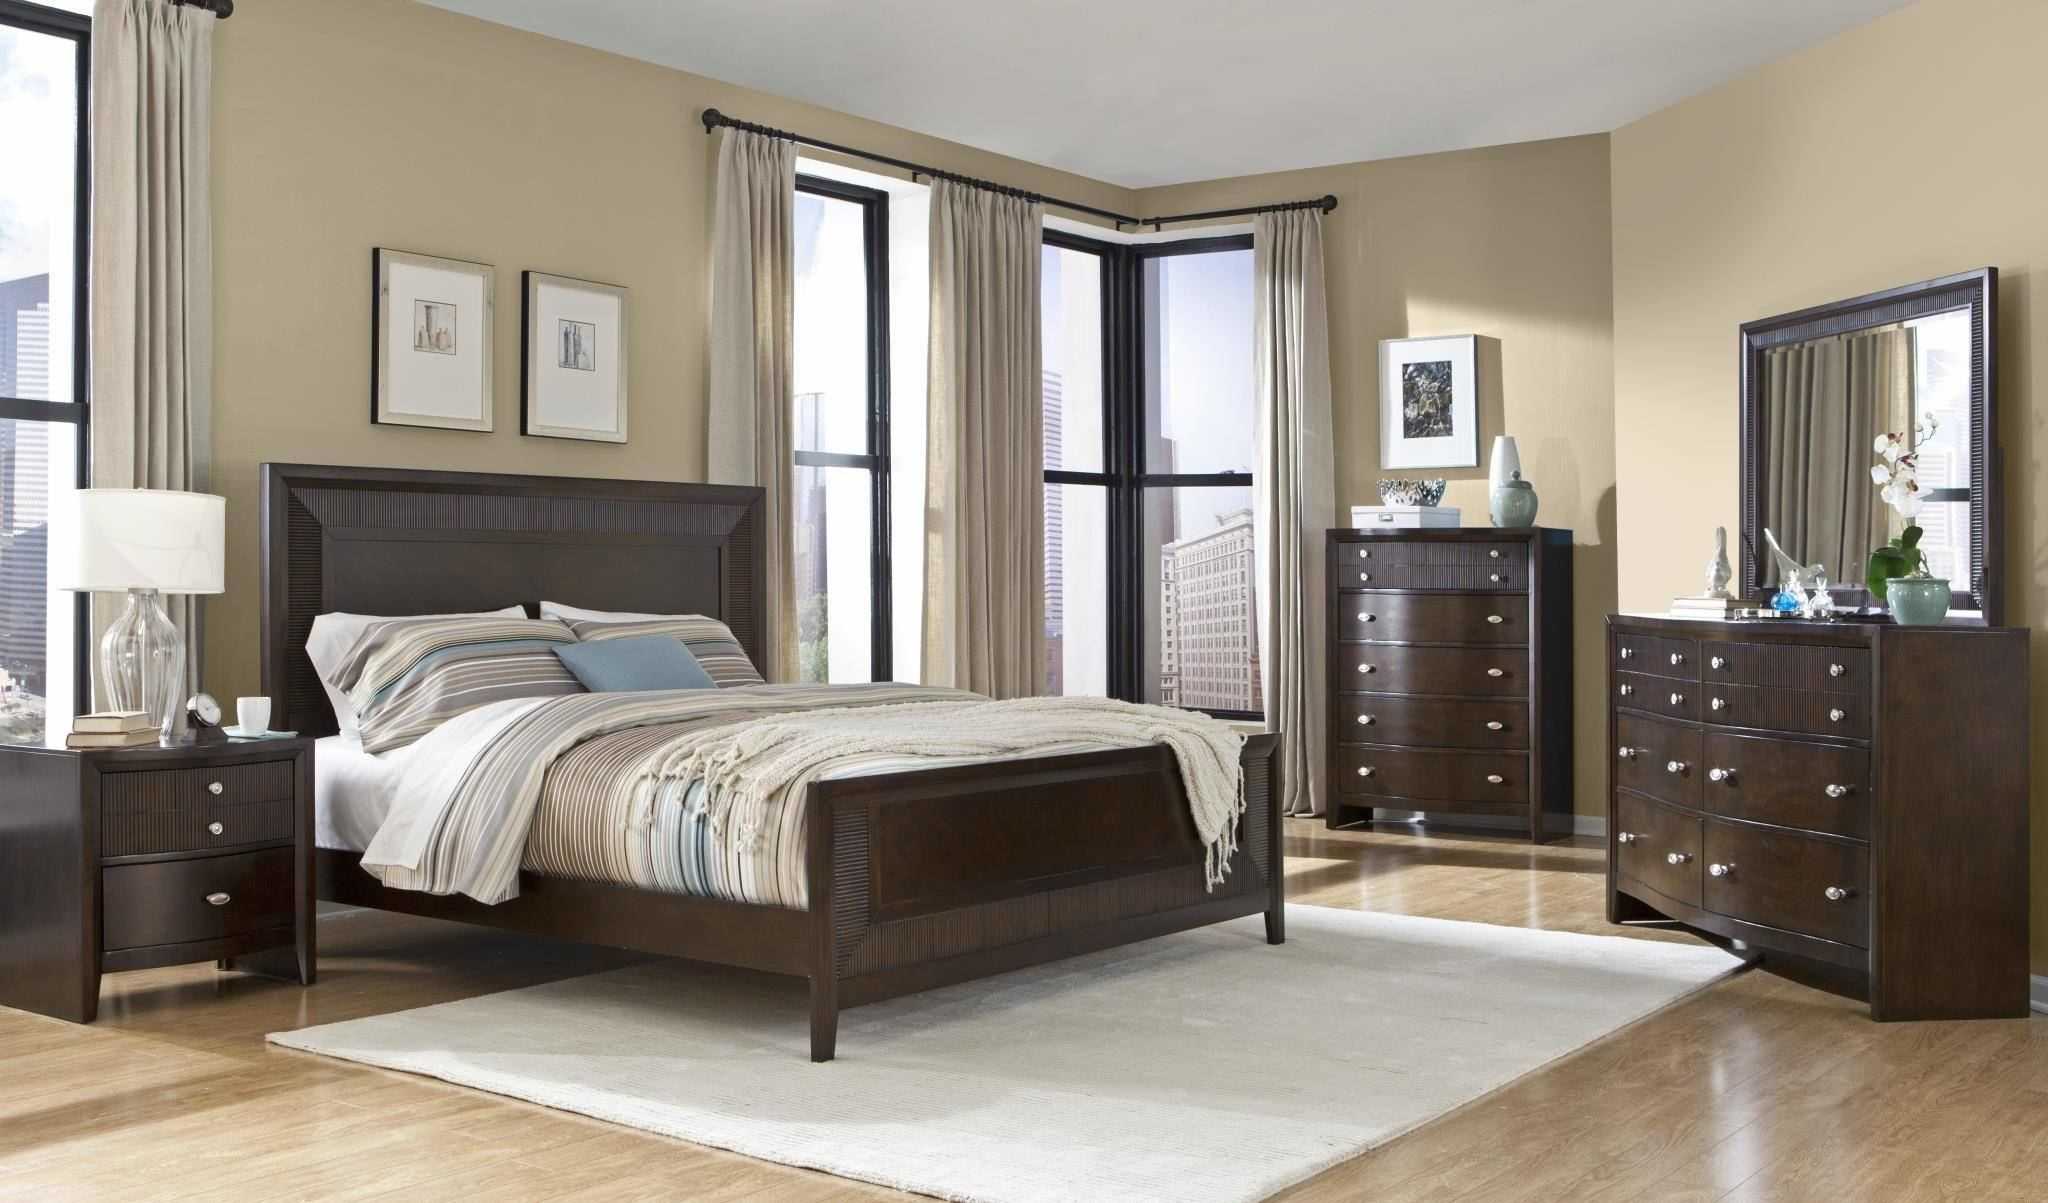 Adorable Espresso Colored Bedroom Furniture Brown Coloured Grace Set Finish Licious Ure Paint In Colors P Home Design Ideas Inspired Living Enchanting Room